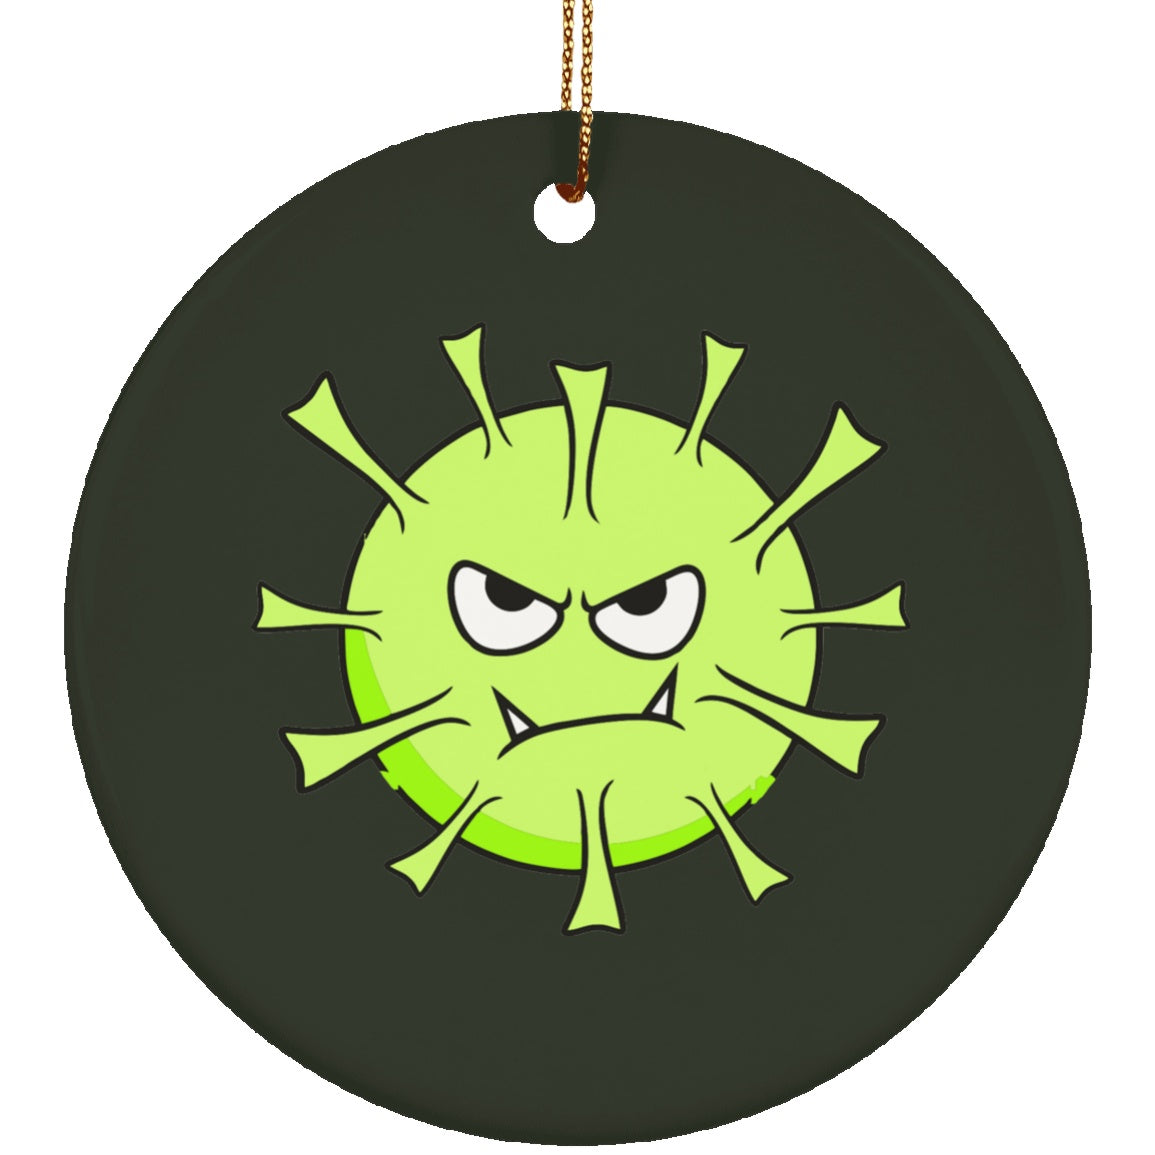 Lyme Disease Monster Circle Ornament - The Unchargeables